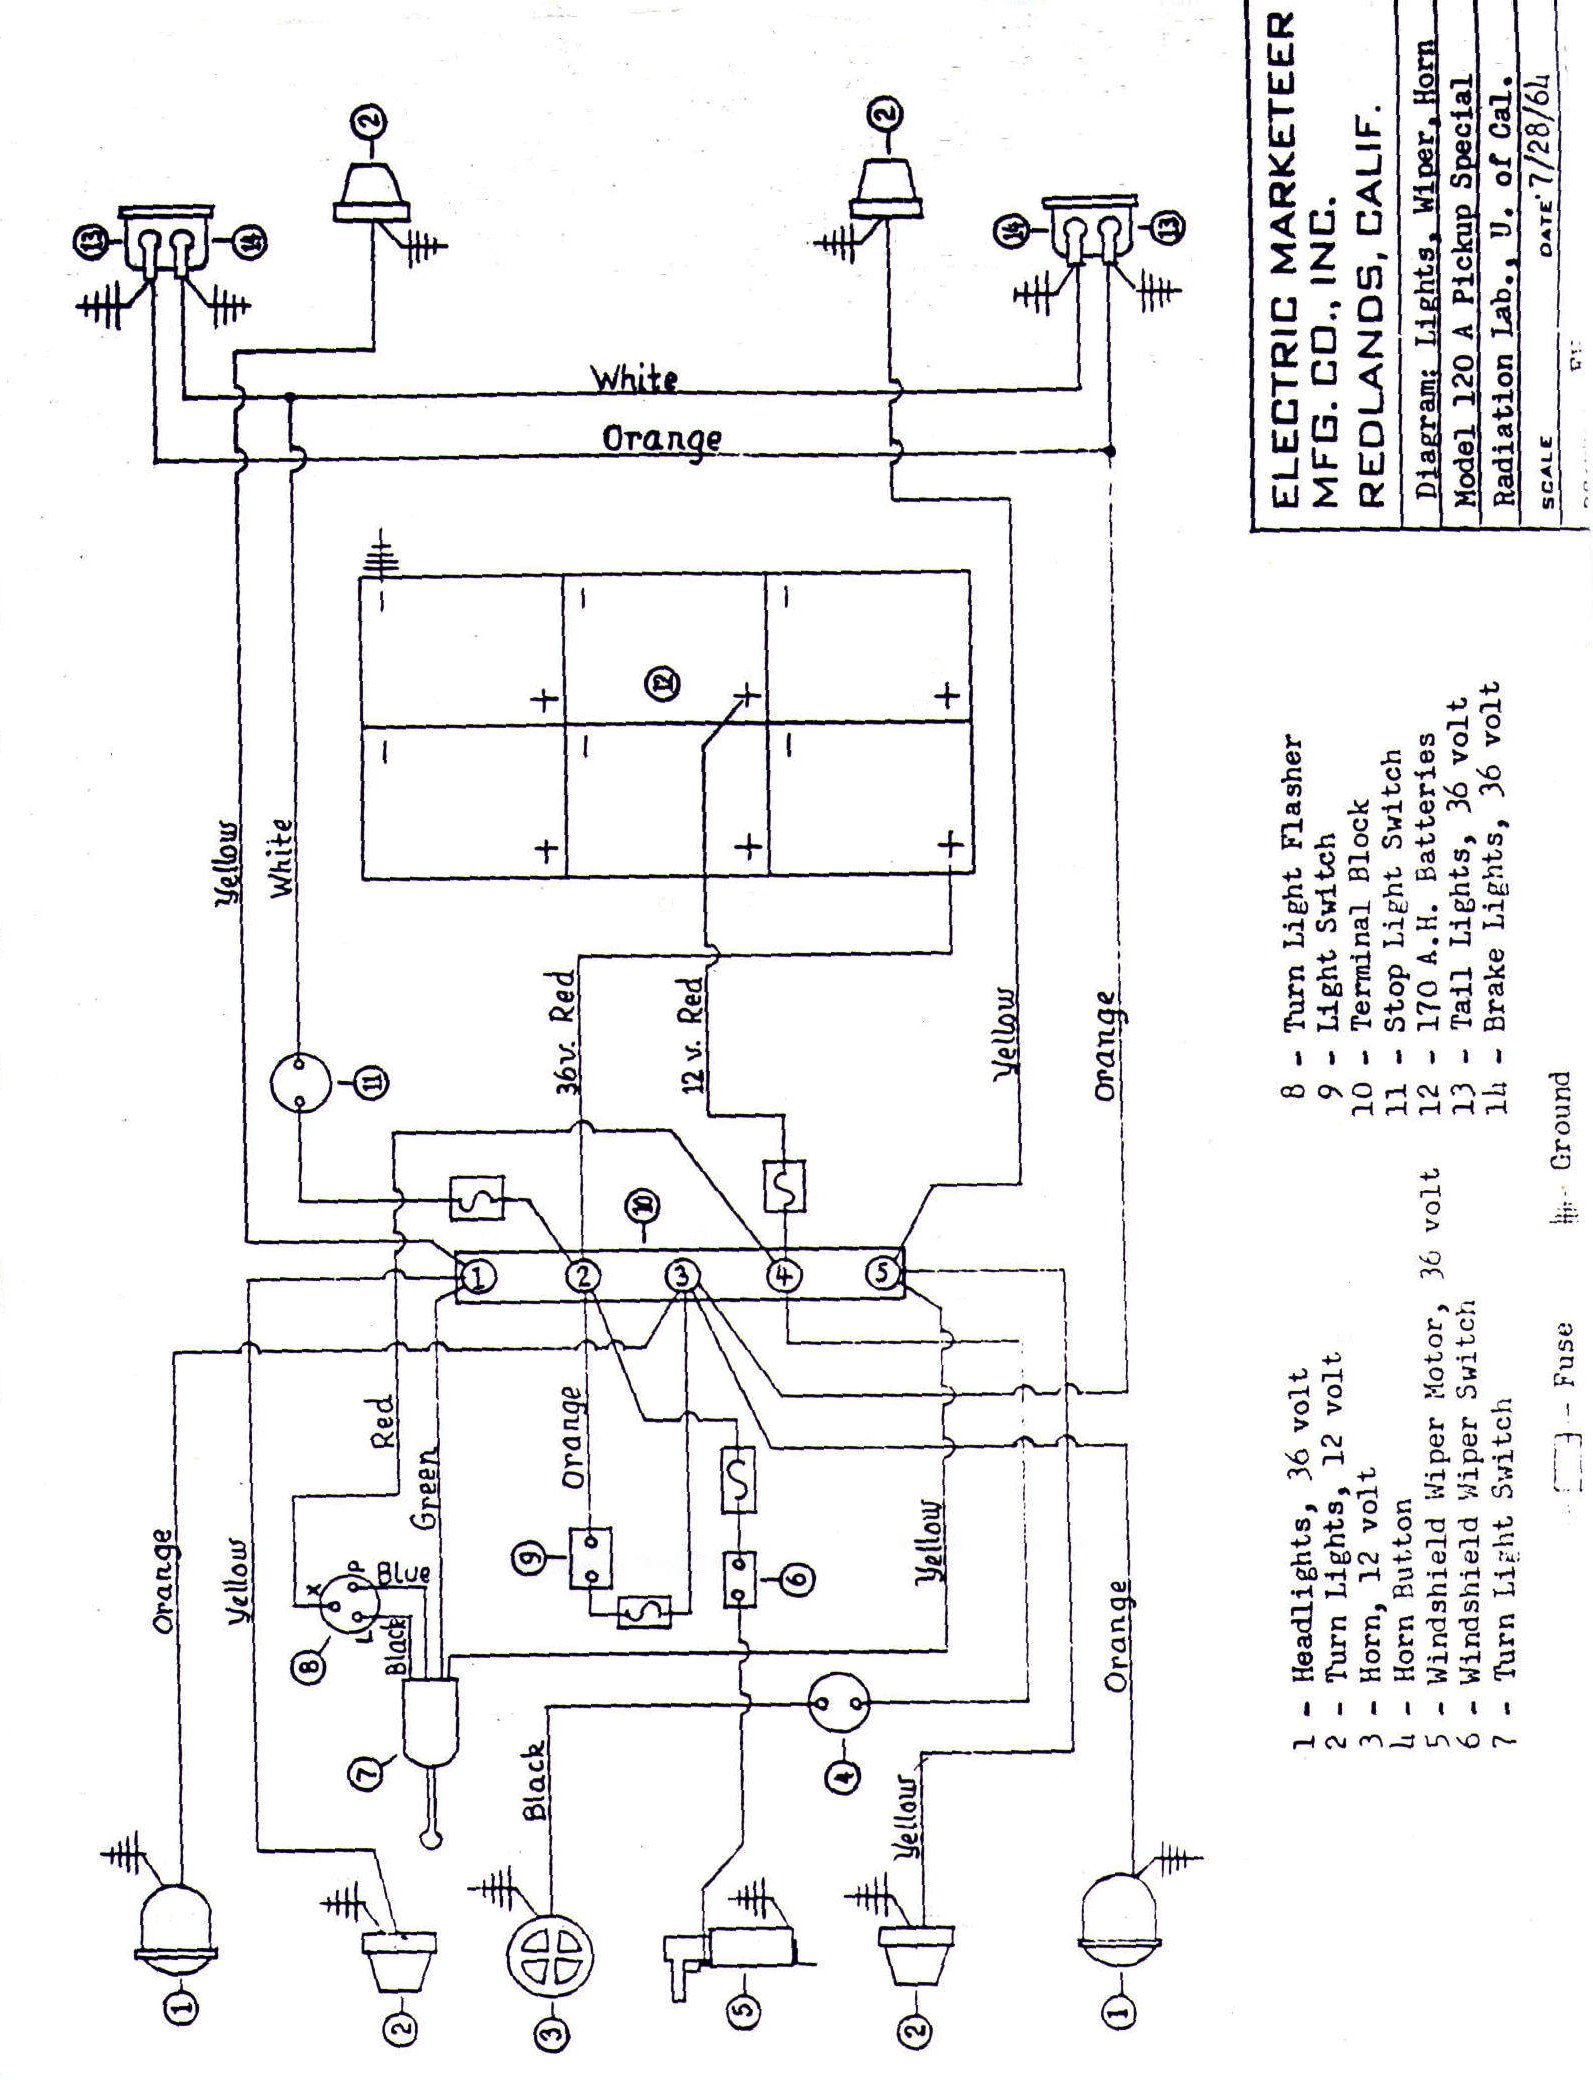 Electrical Wiring Diagrams For Boats moreover Century Ac Motor Wiring additionally Valeo Wiper Motor Wiring Diagram additionally Schematics i in addition Ford Sierra 2 9 1990 Specs And Images. on boat wiper parts